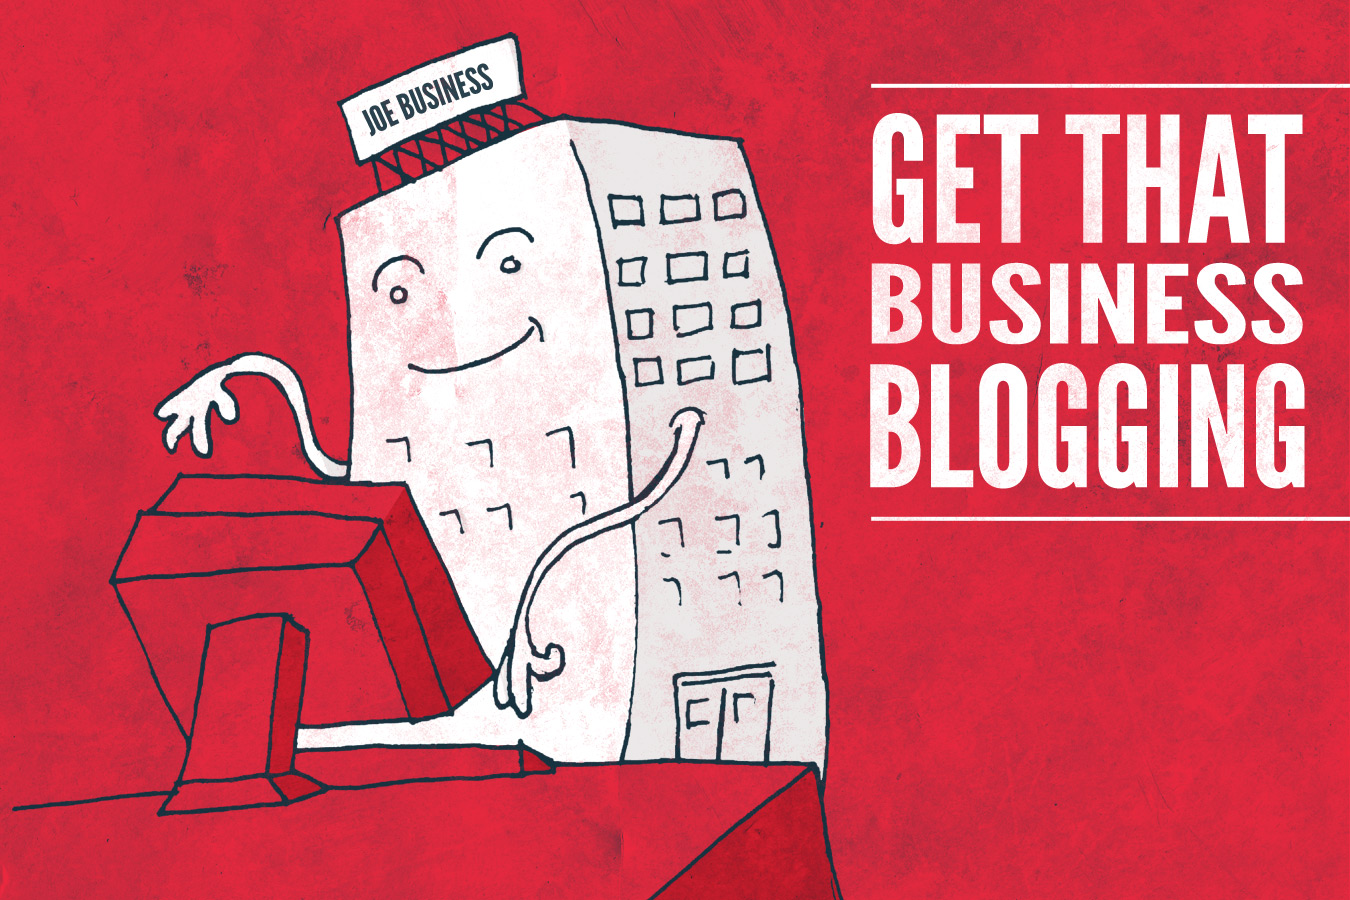 I will guest Post in Business Blog PR 2 for $6